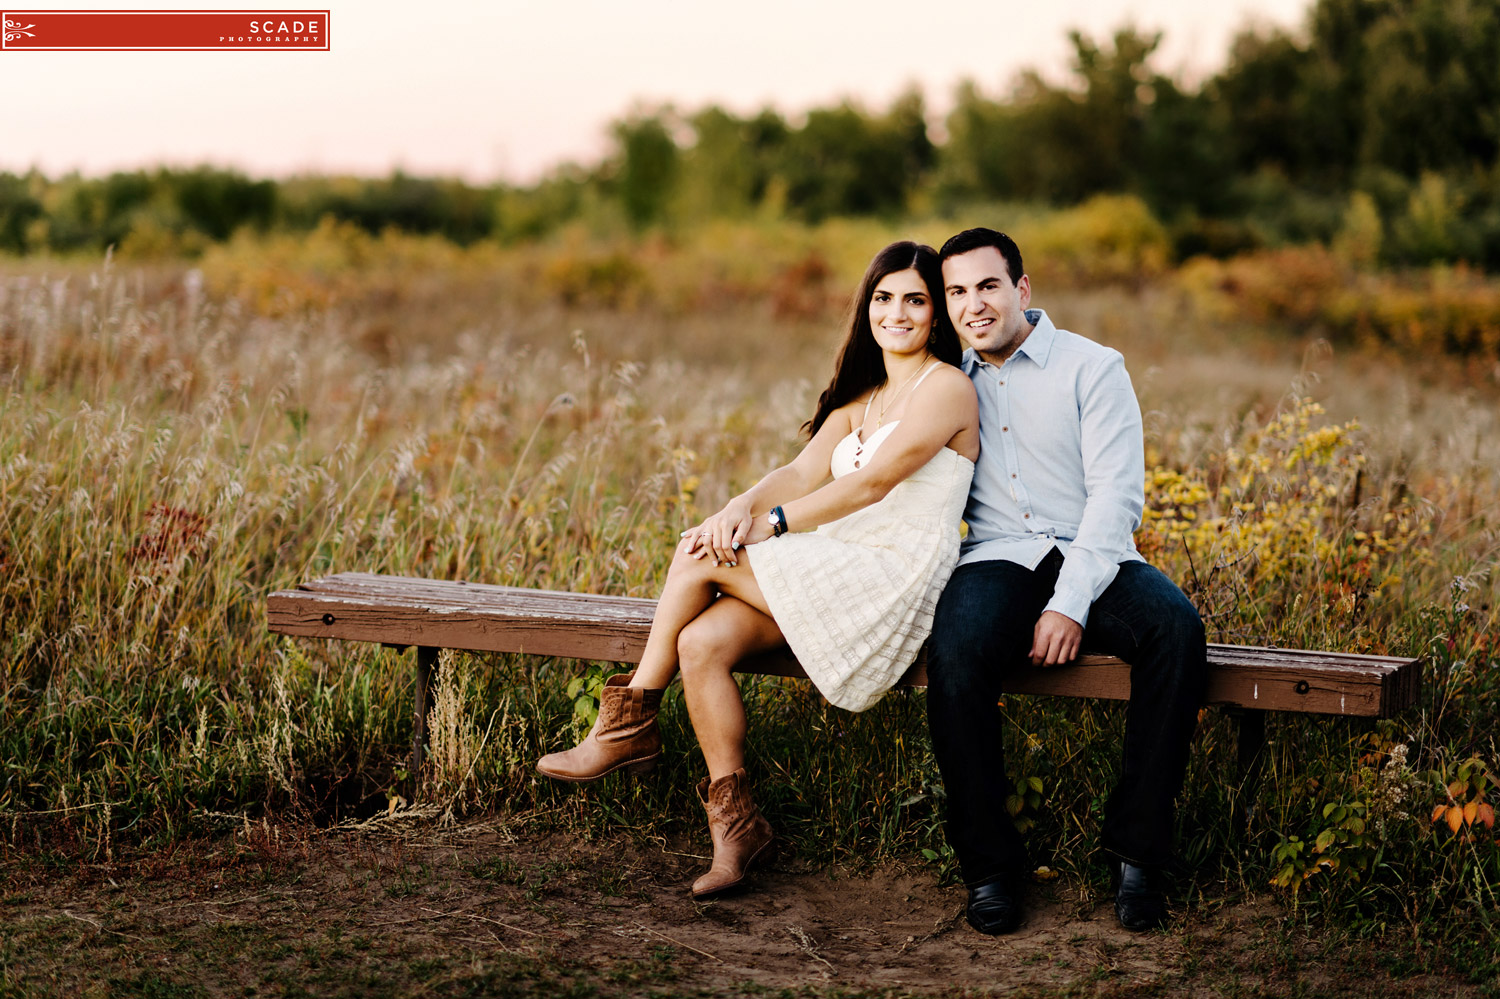 Fall Engagement Session - Laura and Anthony0016.JPG